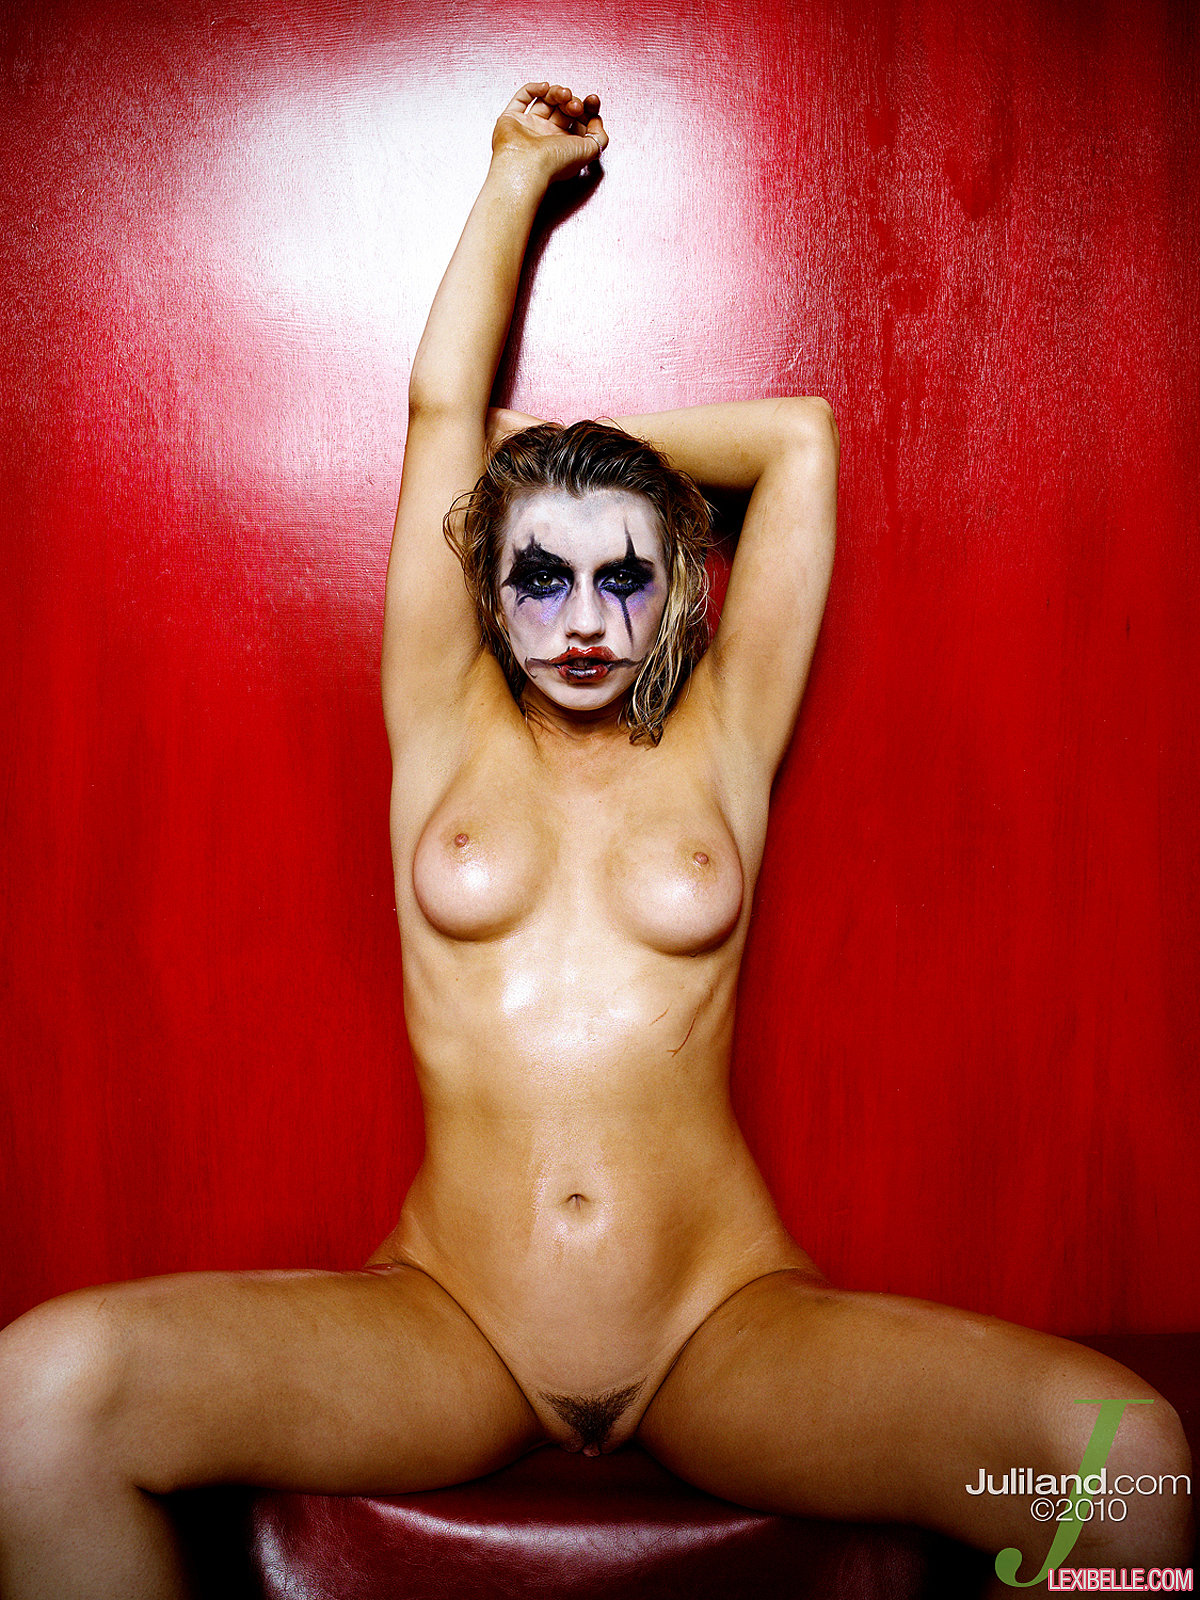 Opinion here Sexy female clown naked interesting moment